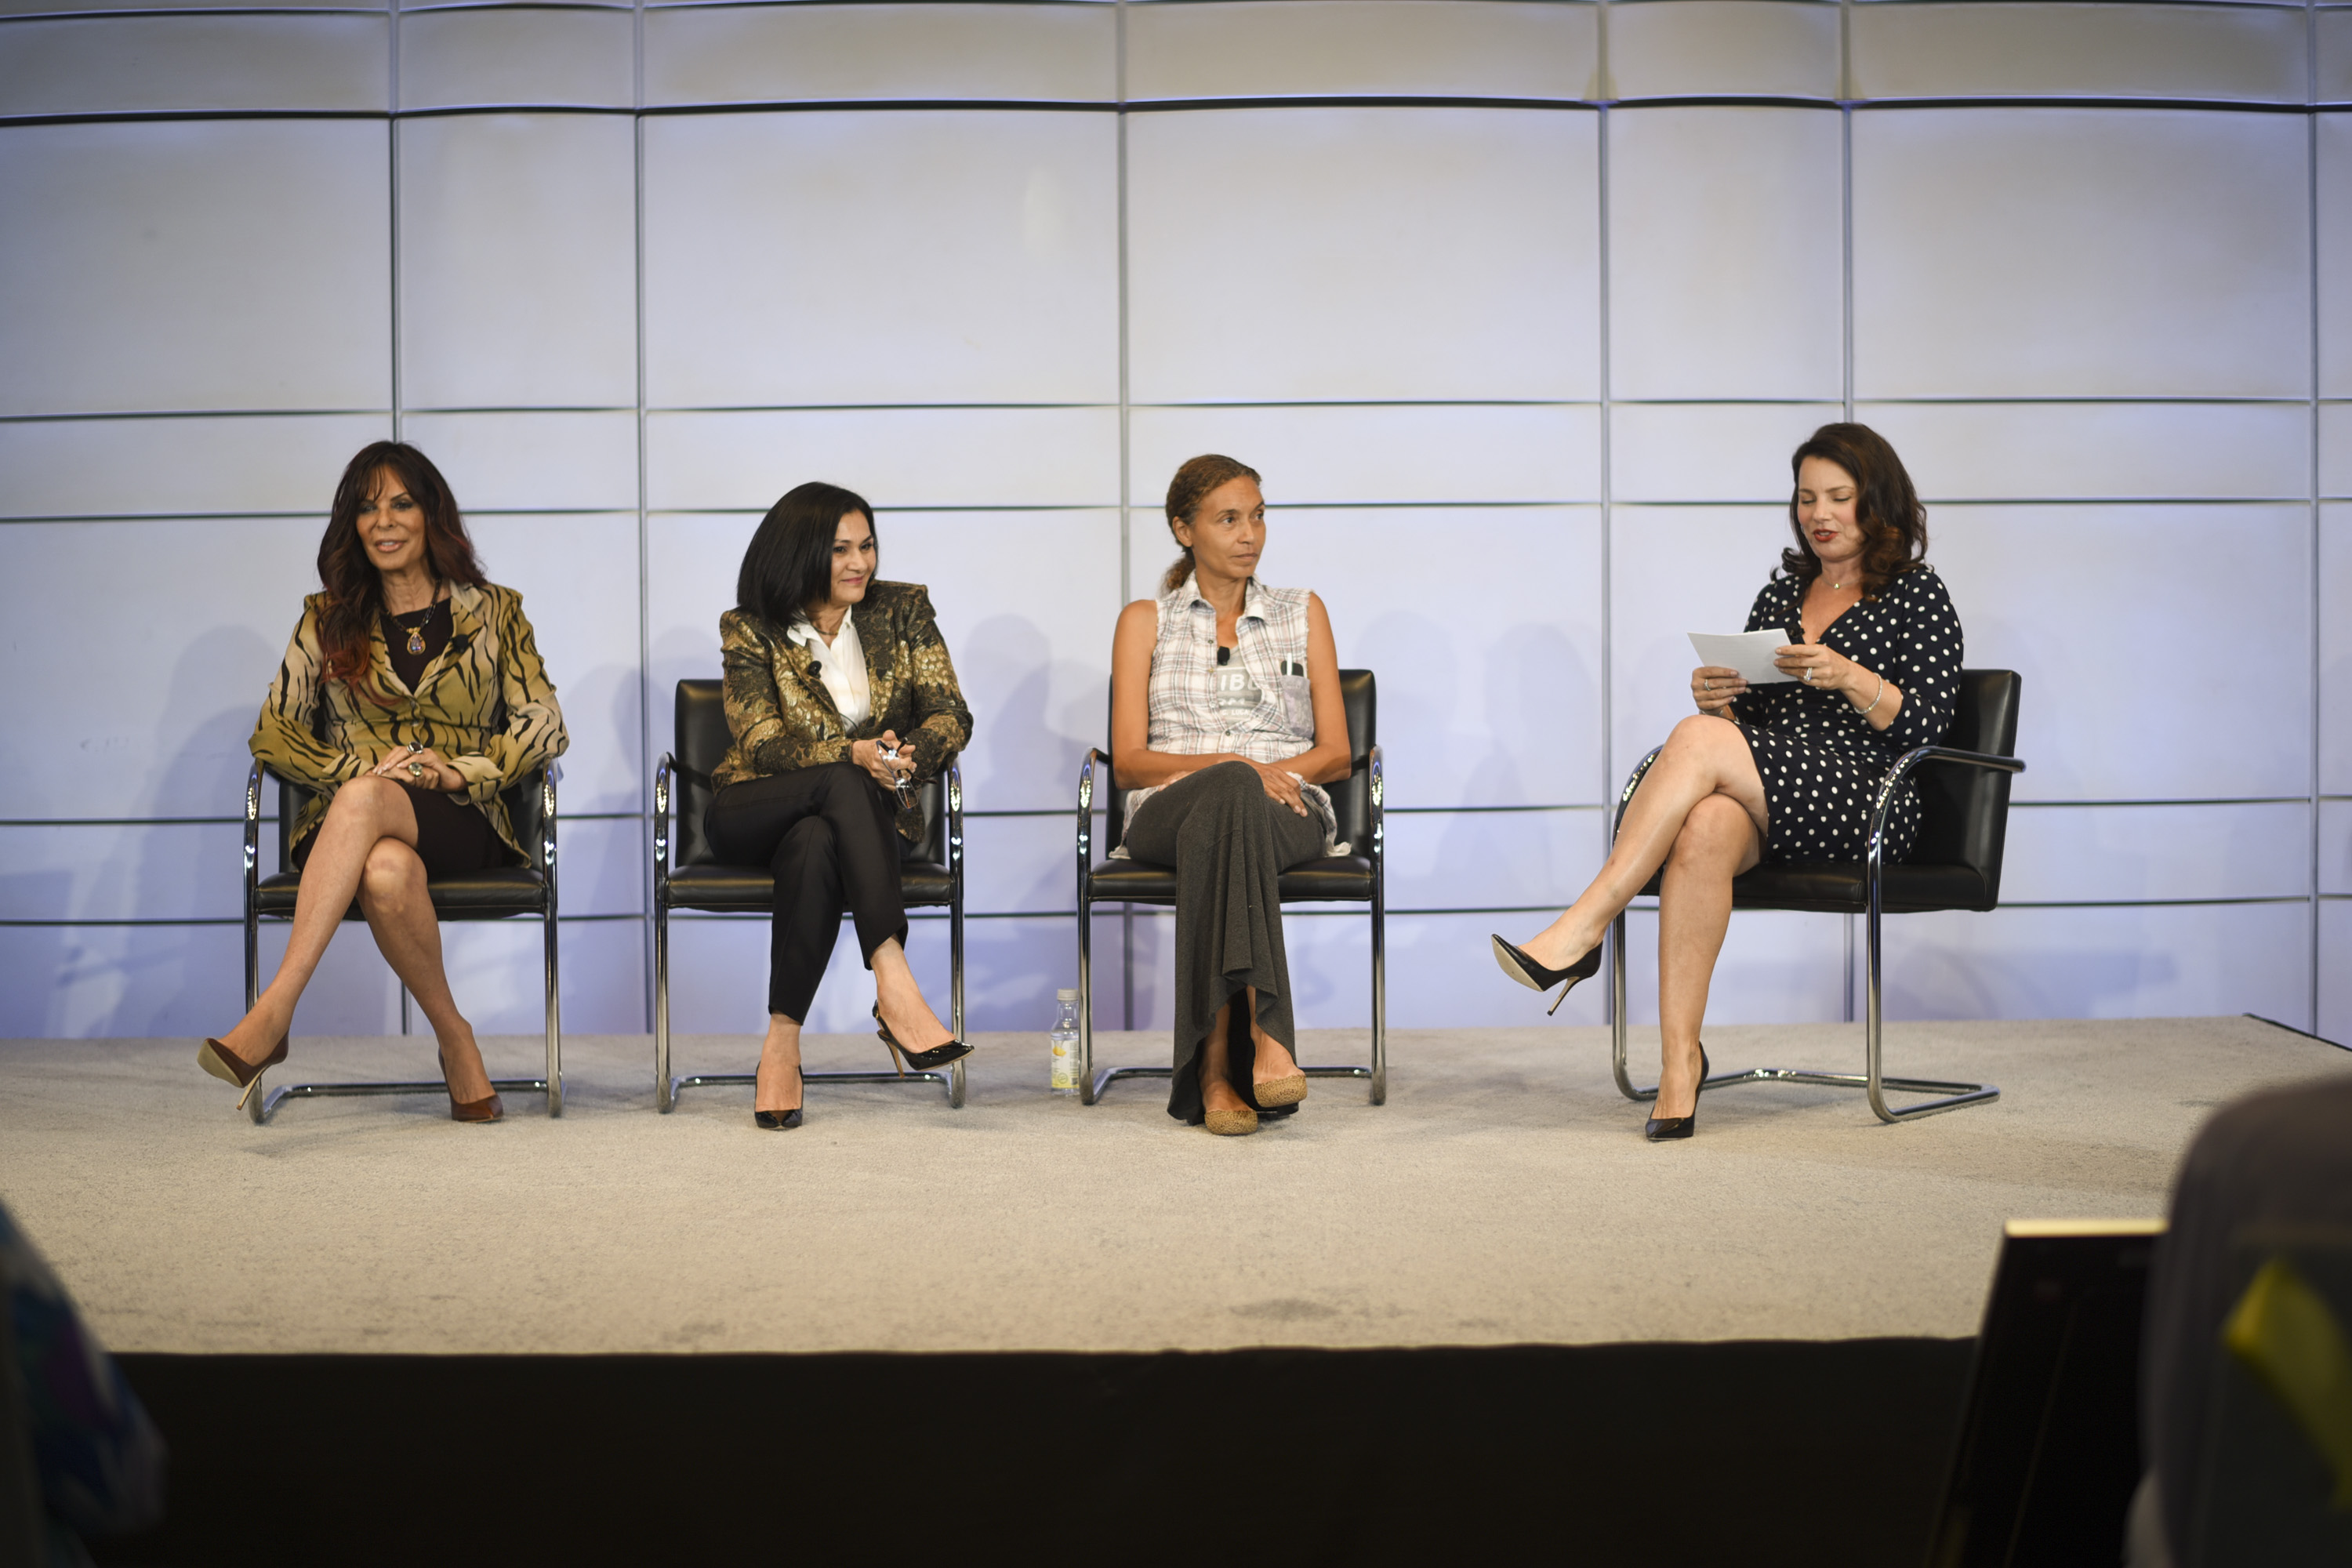 Fran Drescher's Women's Health Summit